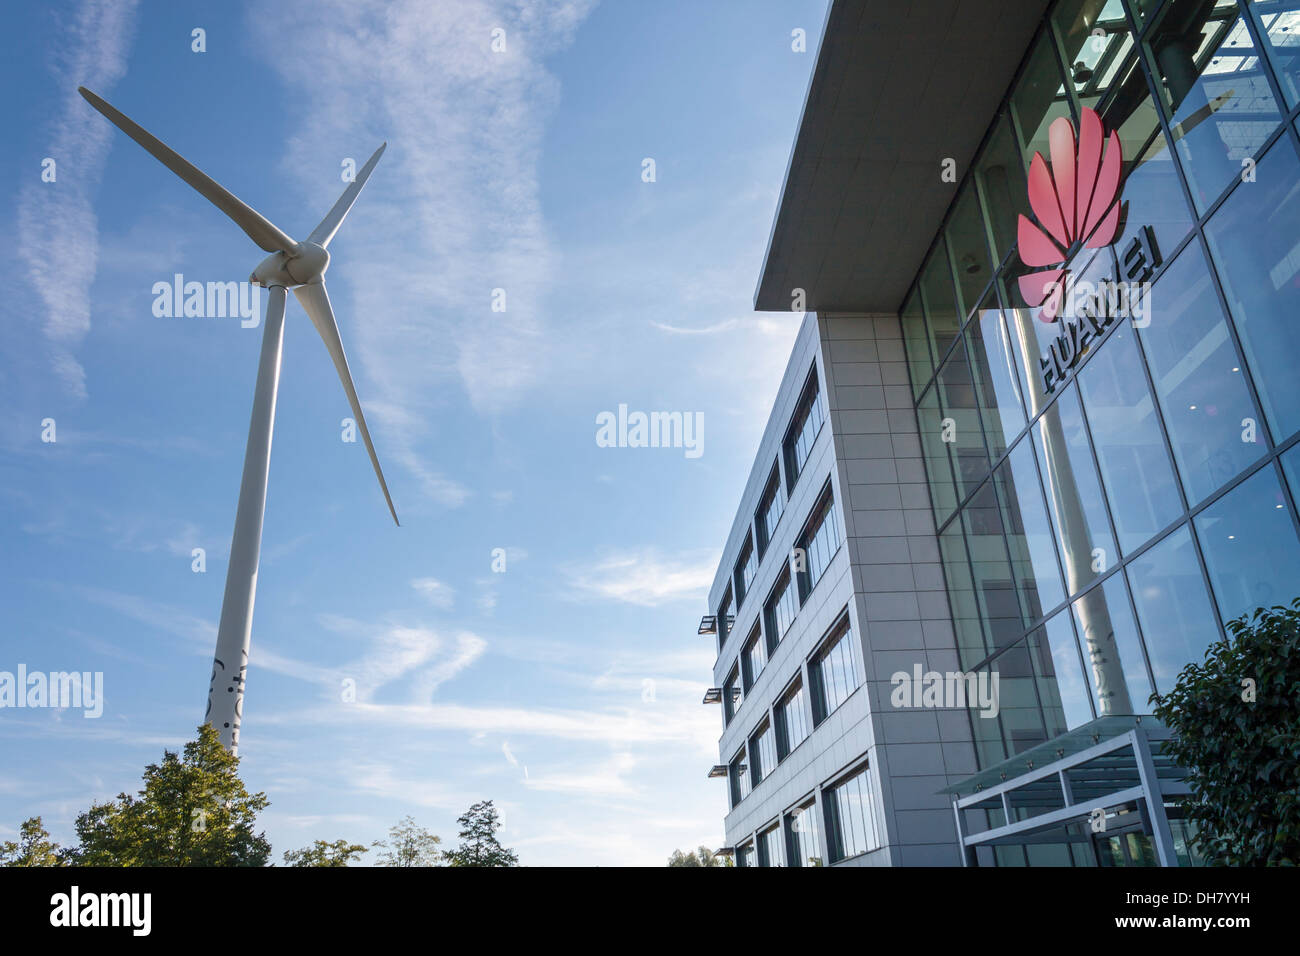 Ecotricity Wind Turbine outside the offices of Chinese mobile phone manufacturer Huawei, Reading, Berkshire, England, GB, UK. - Stock Image